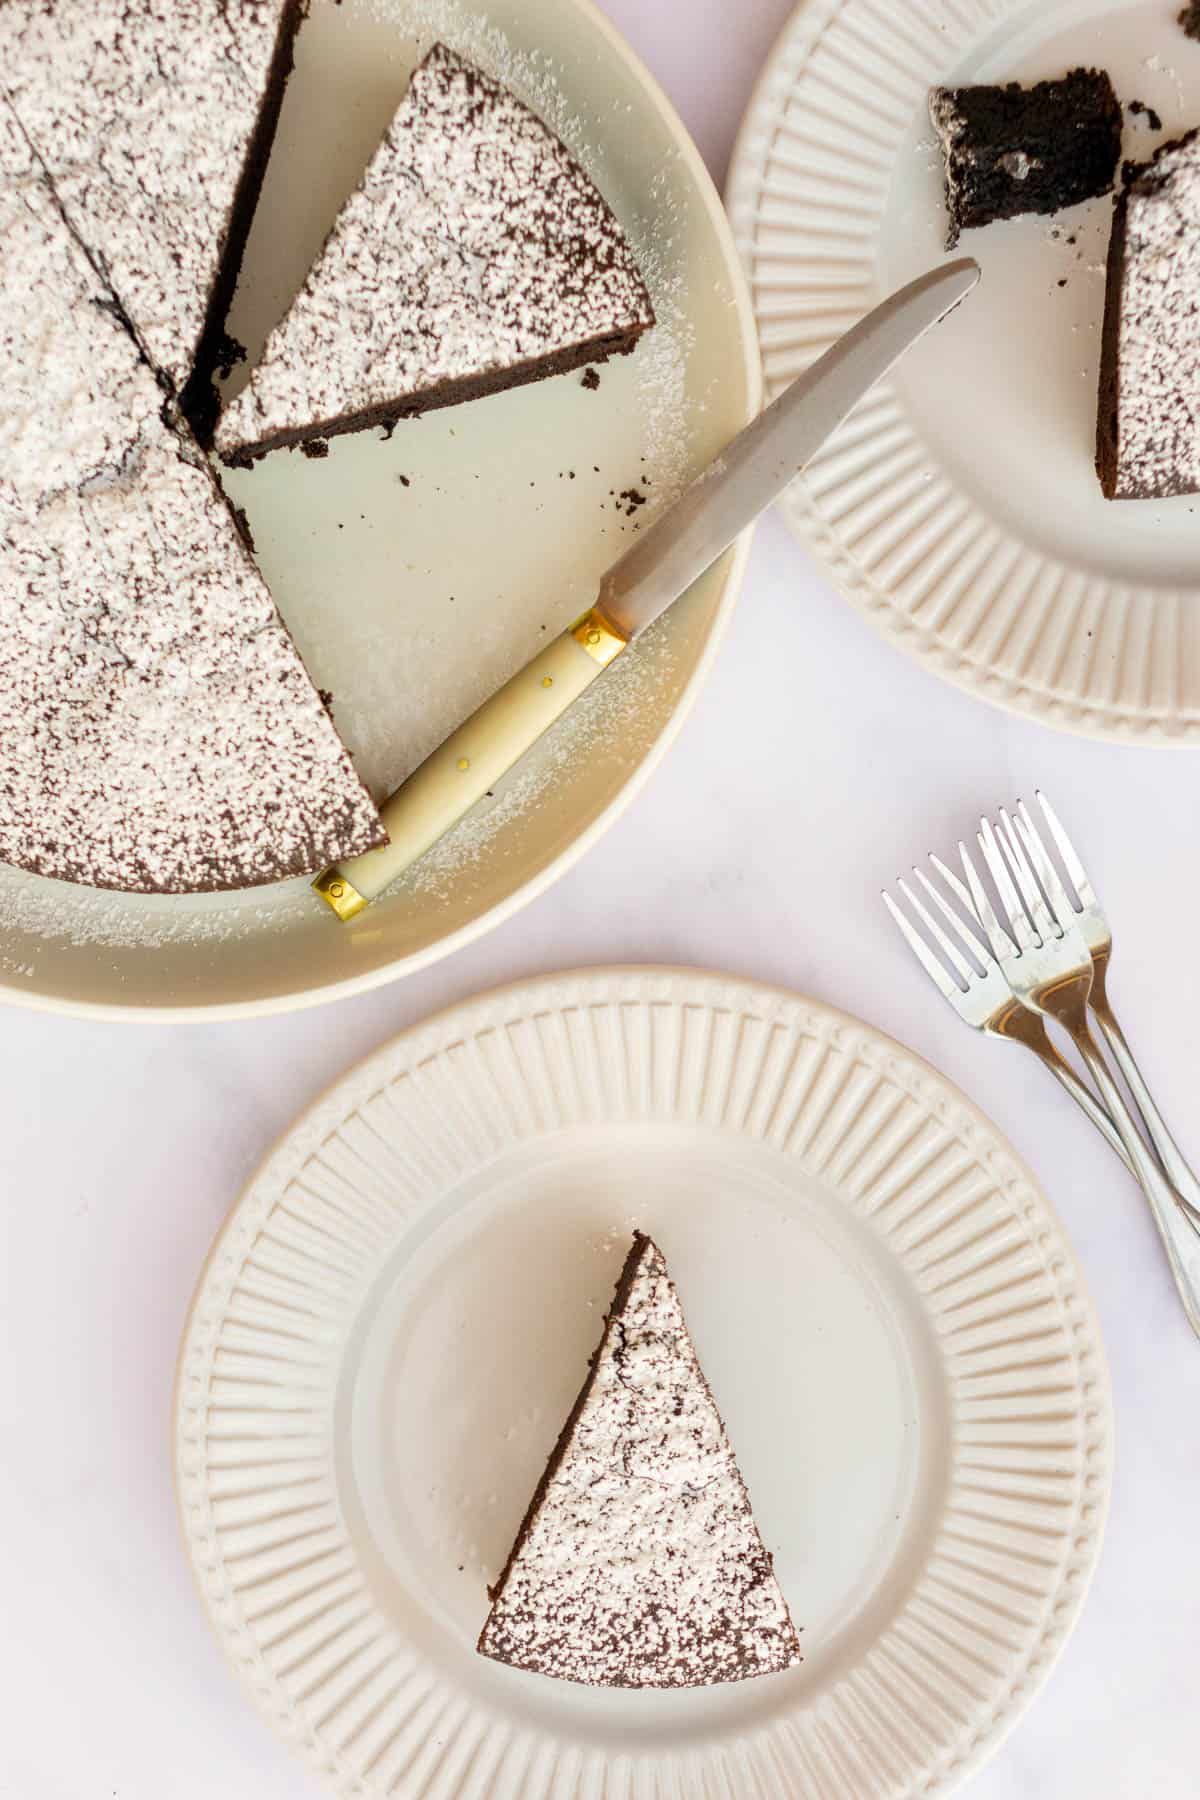 Overhead shot of chocolate olive oil cake cut into slices on a large plate and two smaller slices on small plates.